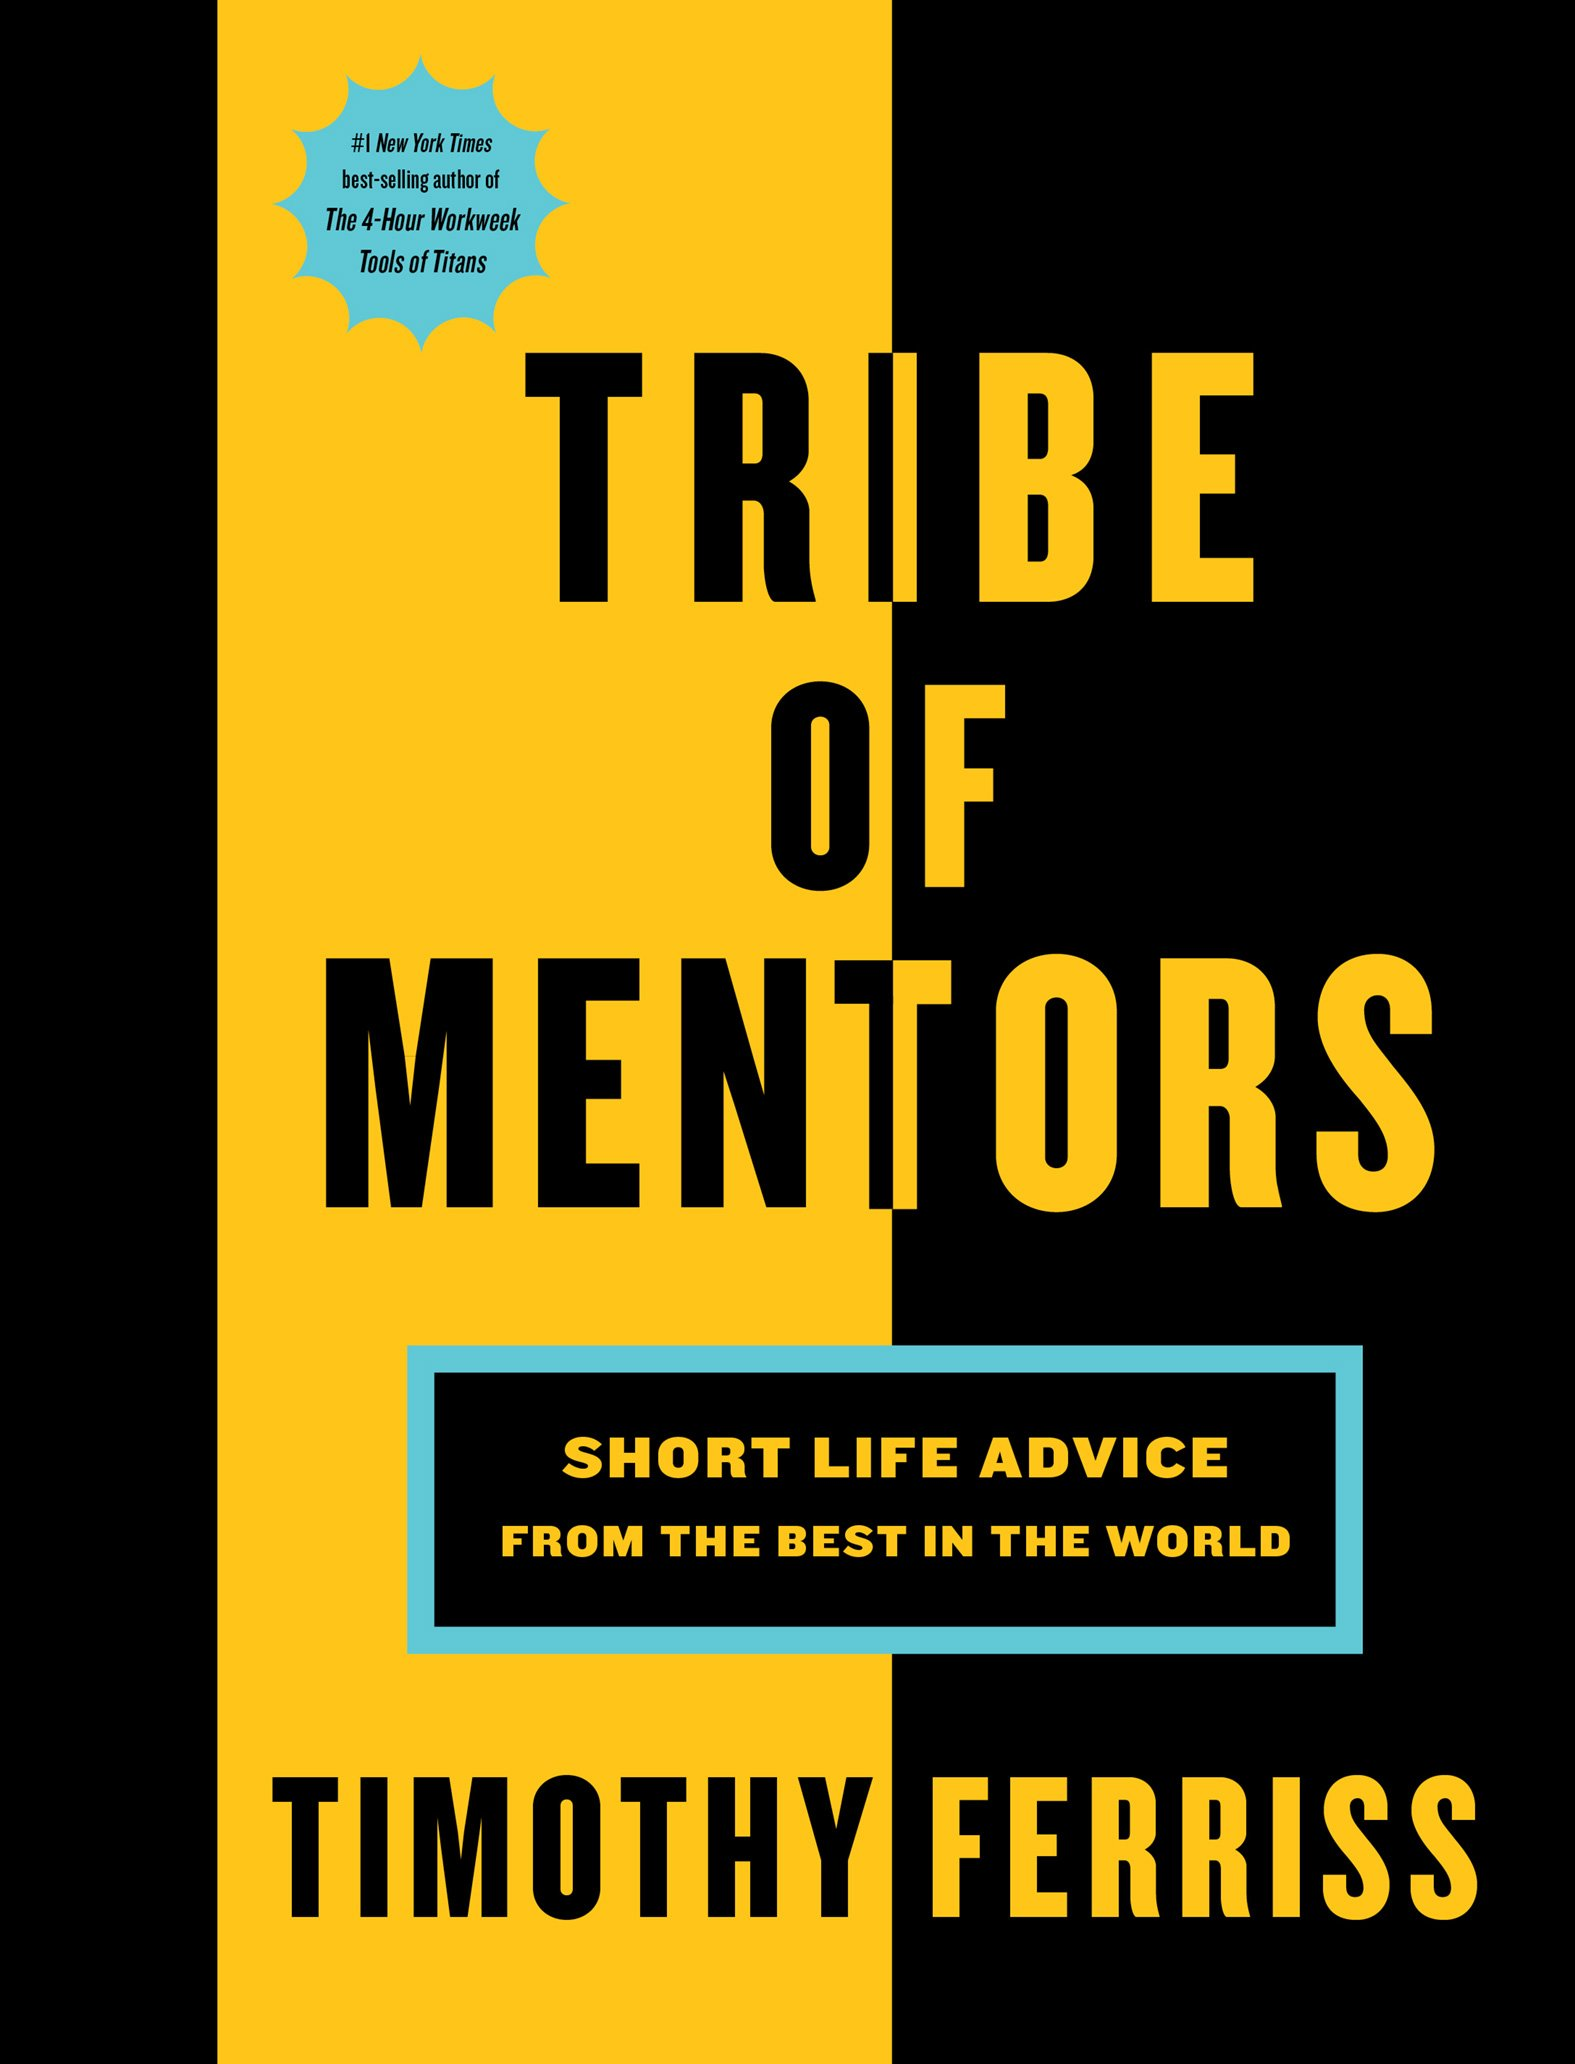 Tribe_of_Mentors-_Short_Life_Advice_from_the_Best_in_the_World_Book.jpg